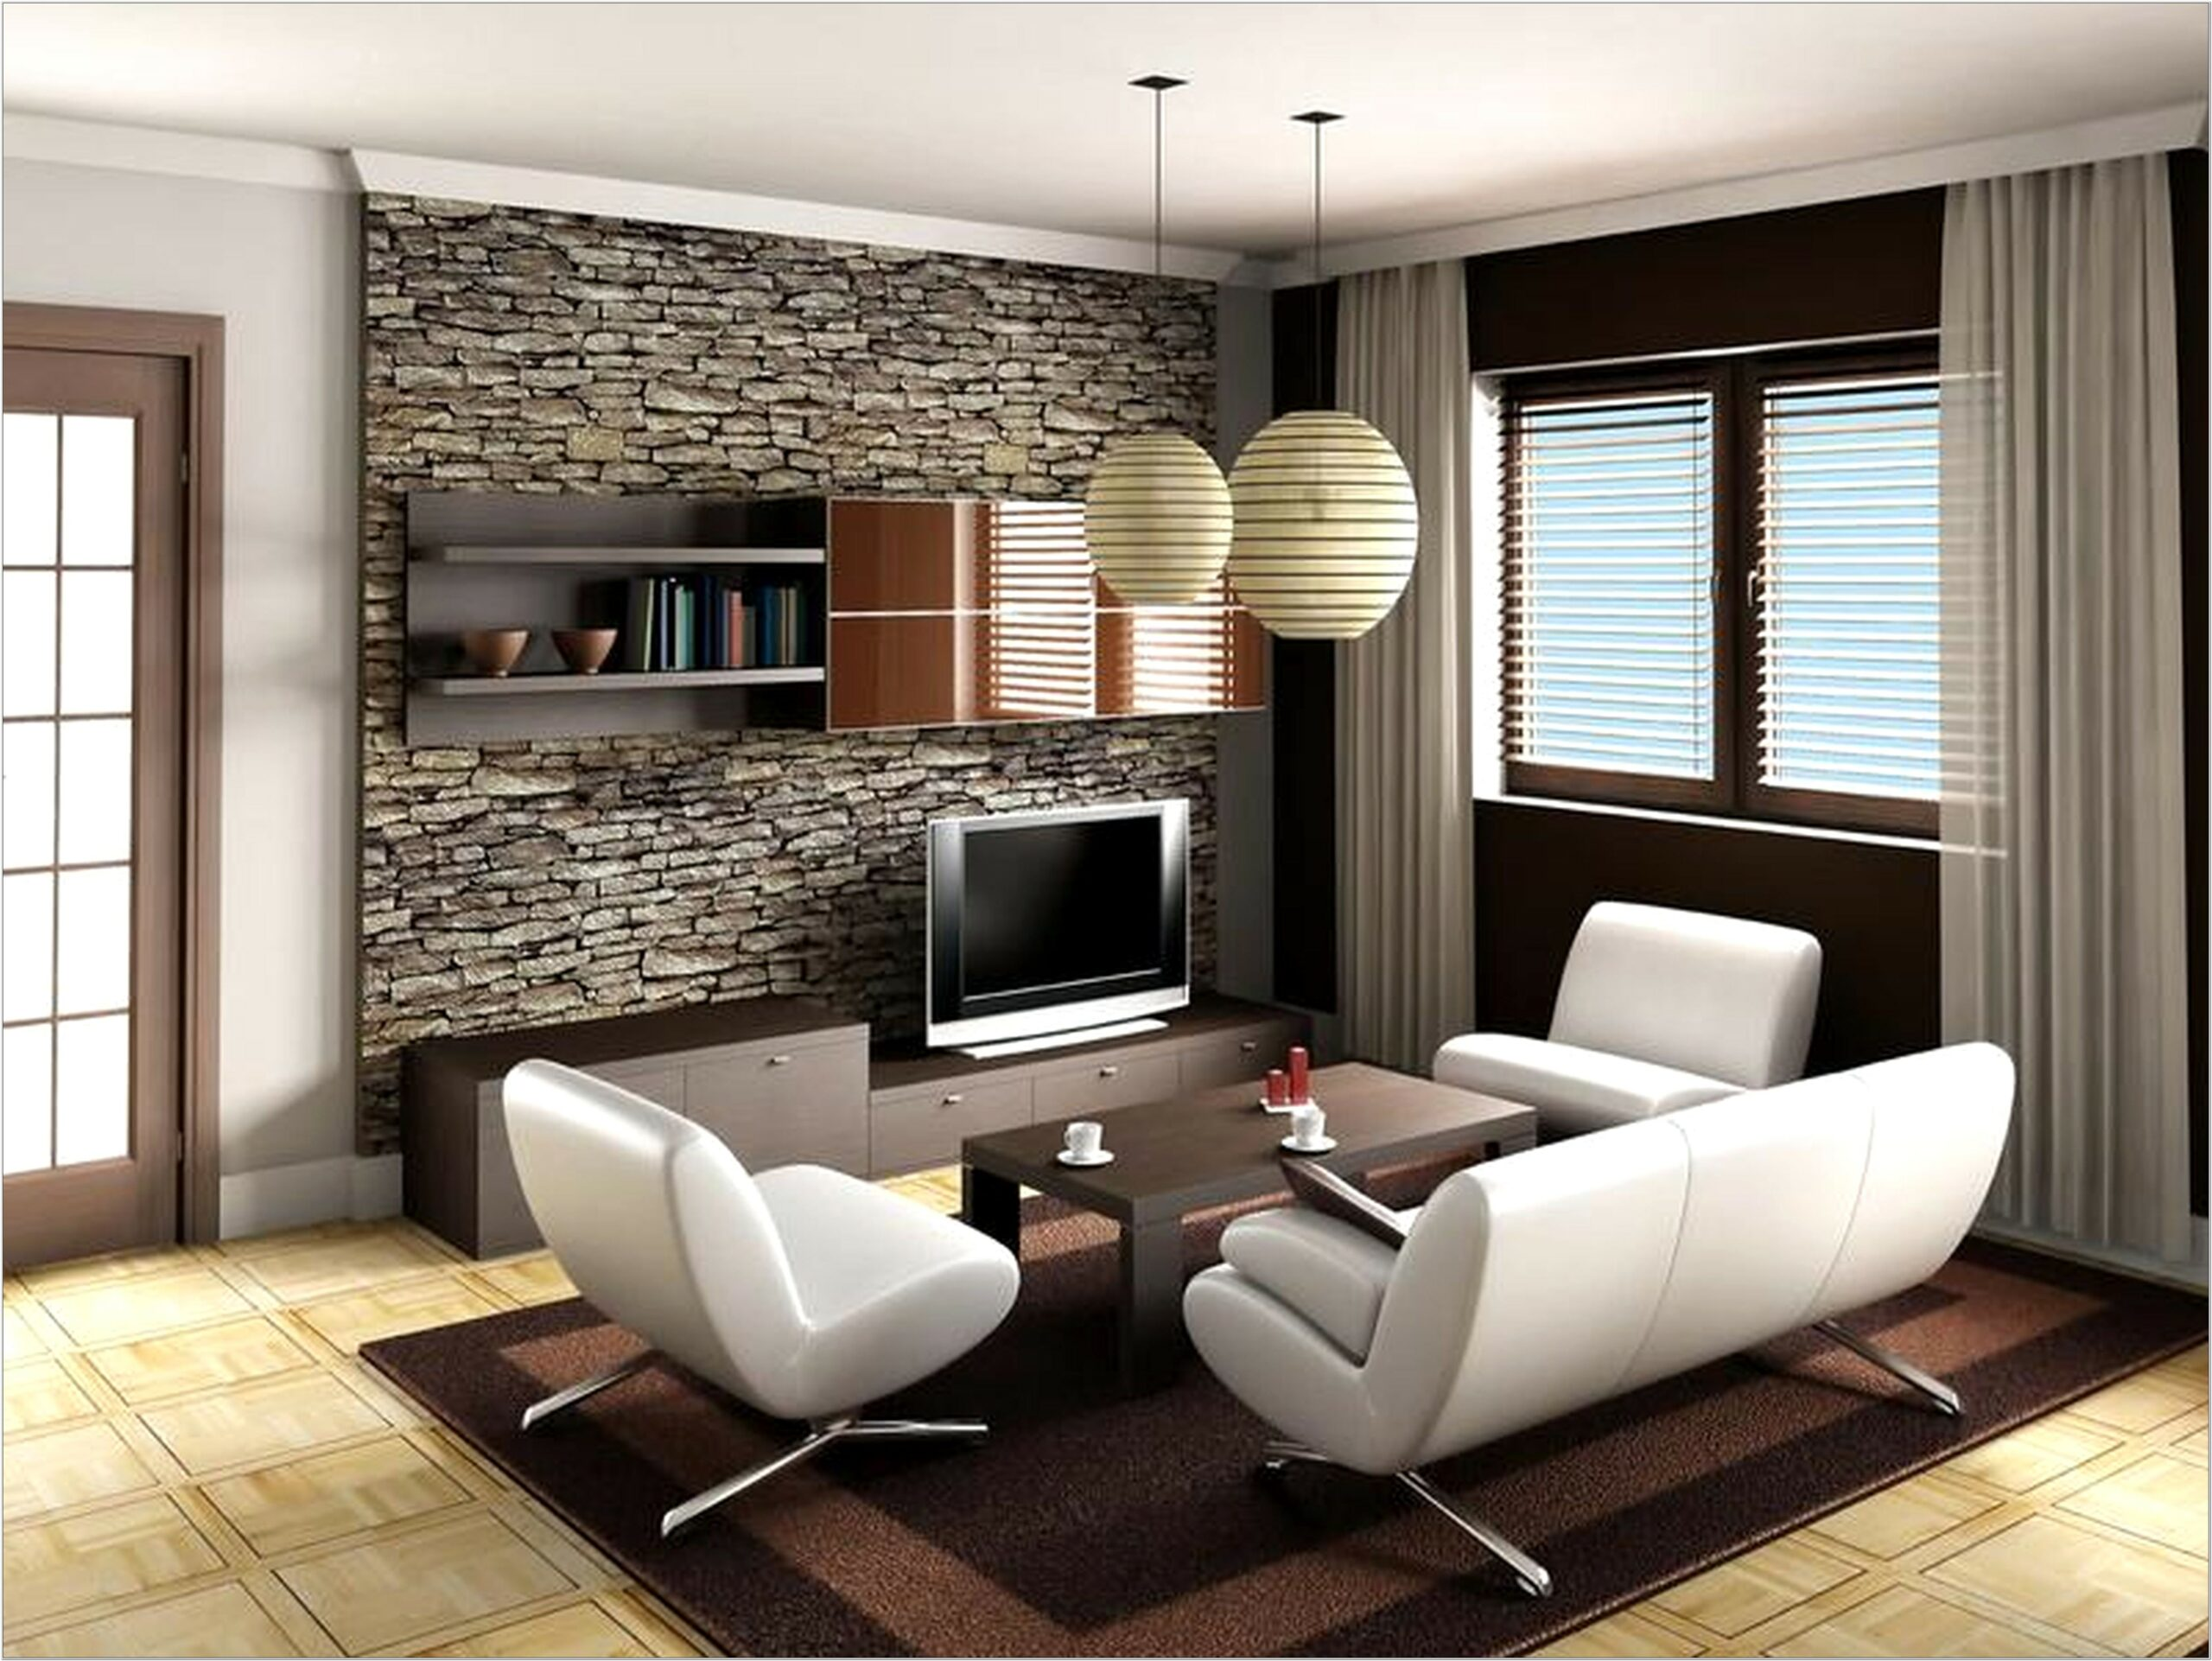 Small Space Ideas For Living Room